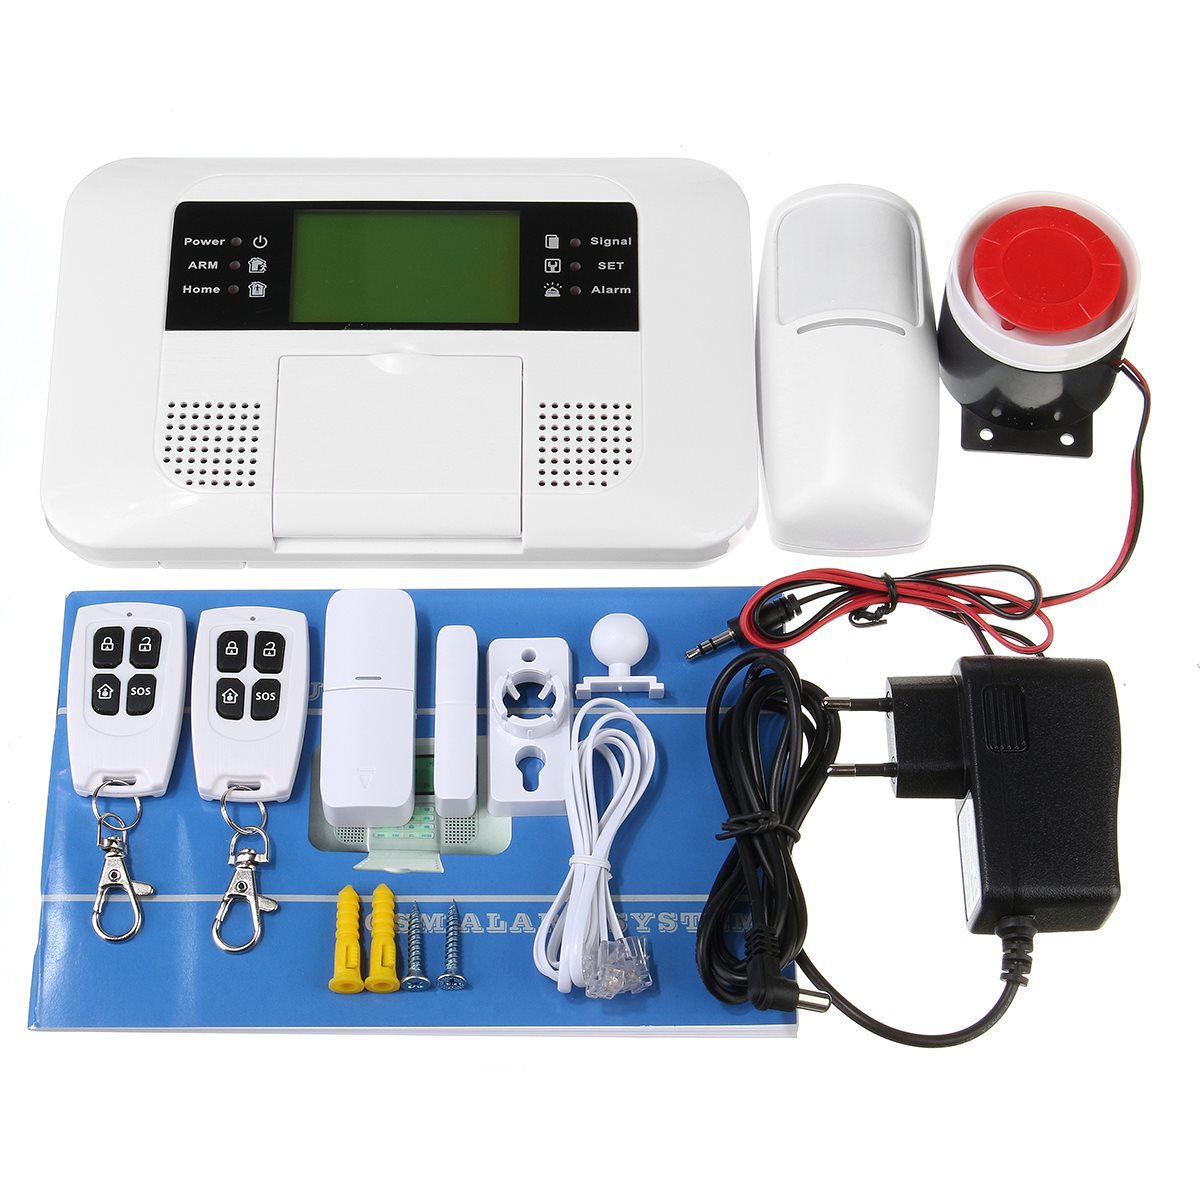 NEW Safurance Wireless GSM and PSTN SMS Home House Alarm System Security Auto Dialer SOS Siren  Home Security new safurance wireless lcd gsm sms autodial alarm security home house burglar intruder system home safety alarm mainframe kits